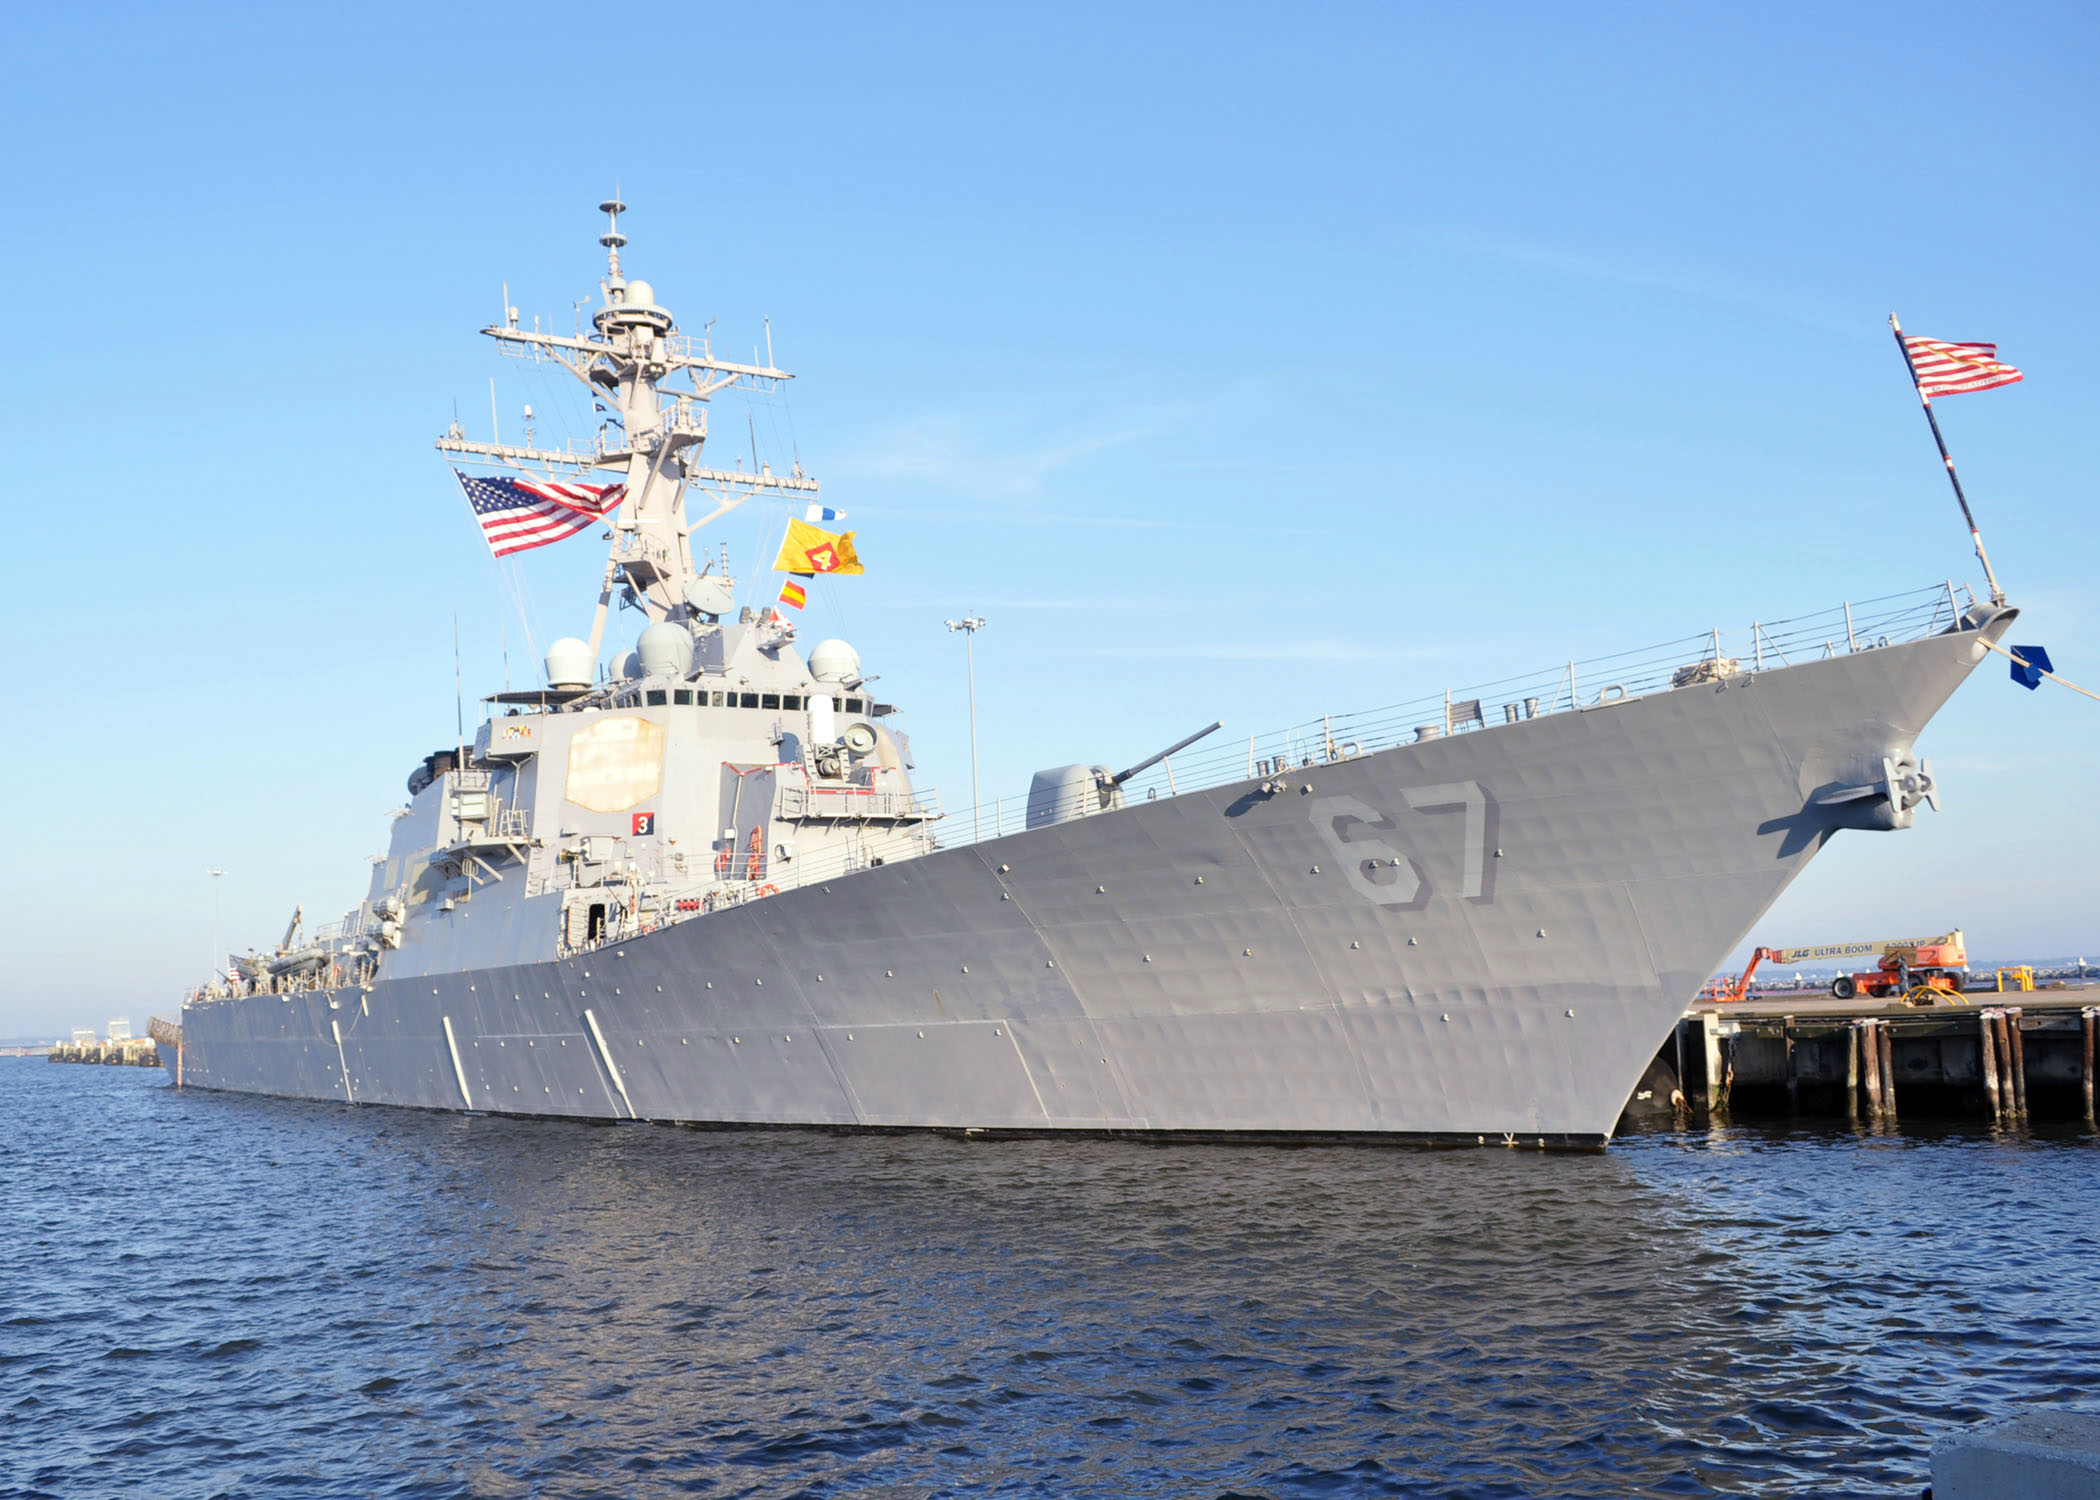 Air Force colonel confines Marine general to quarters in USS Cole trial